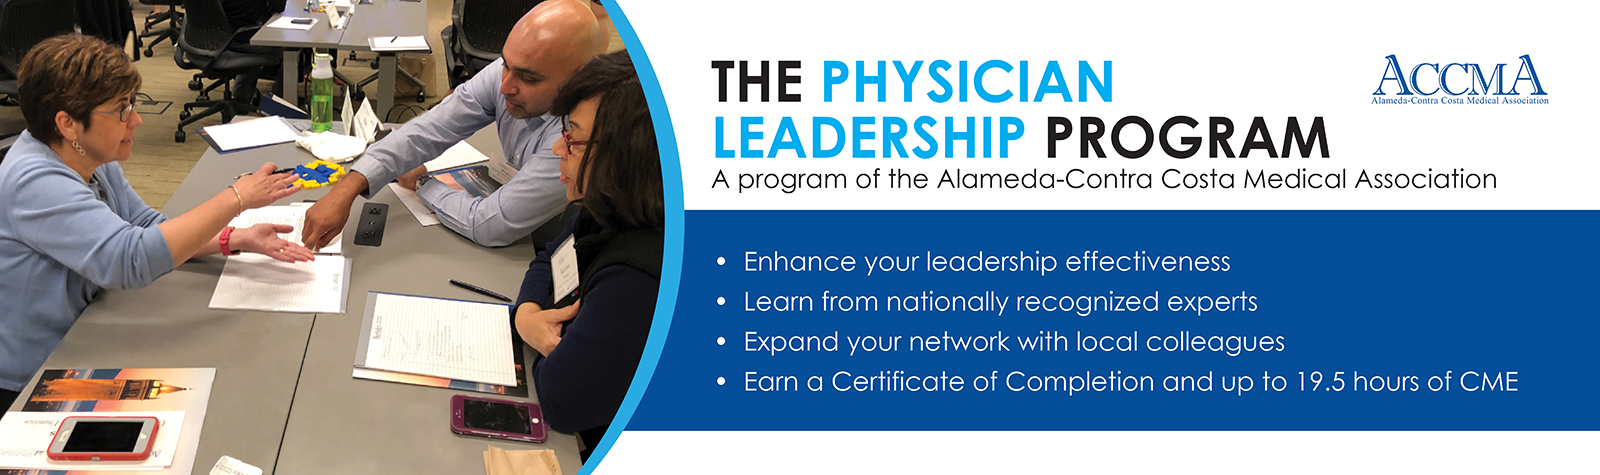 The Physician Leadership Program